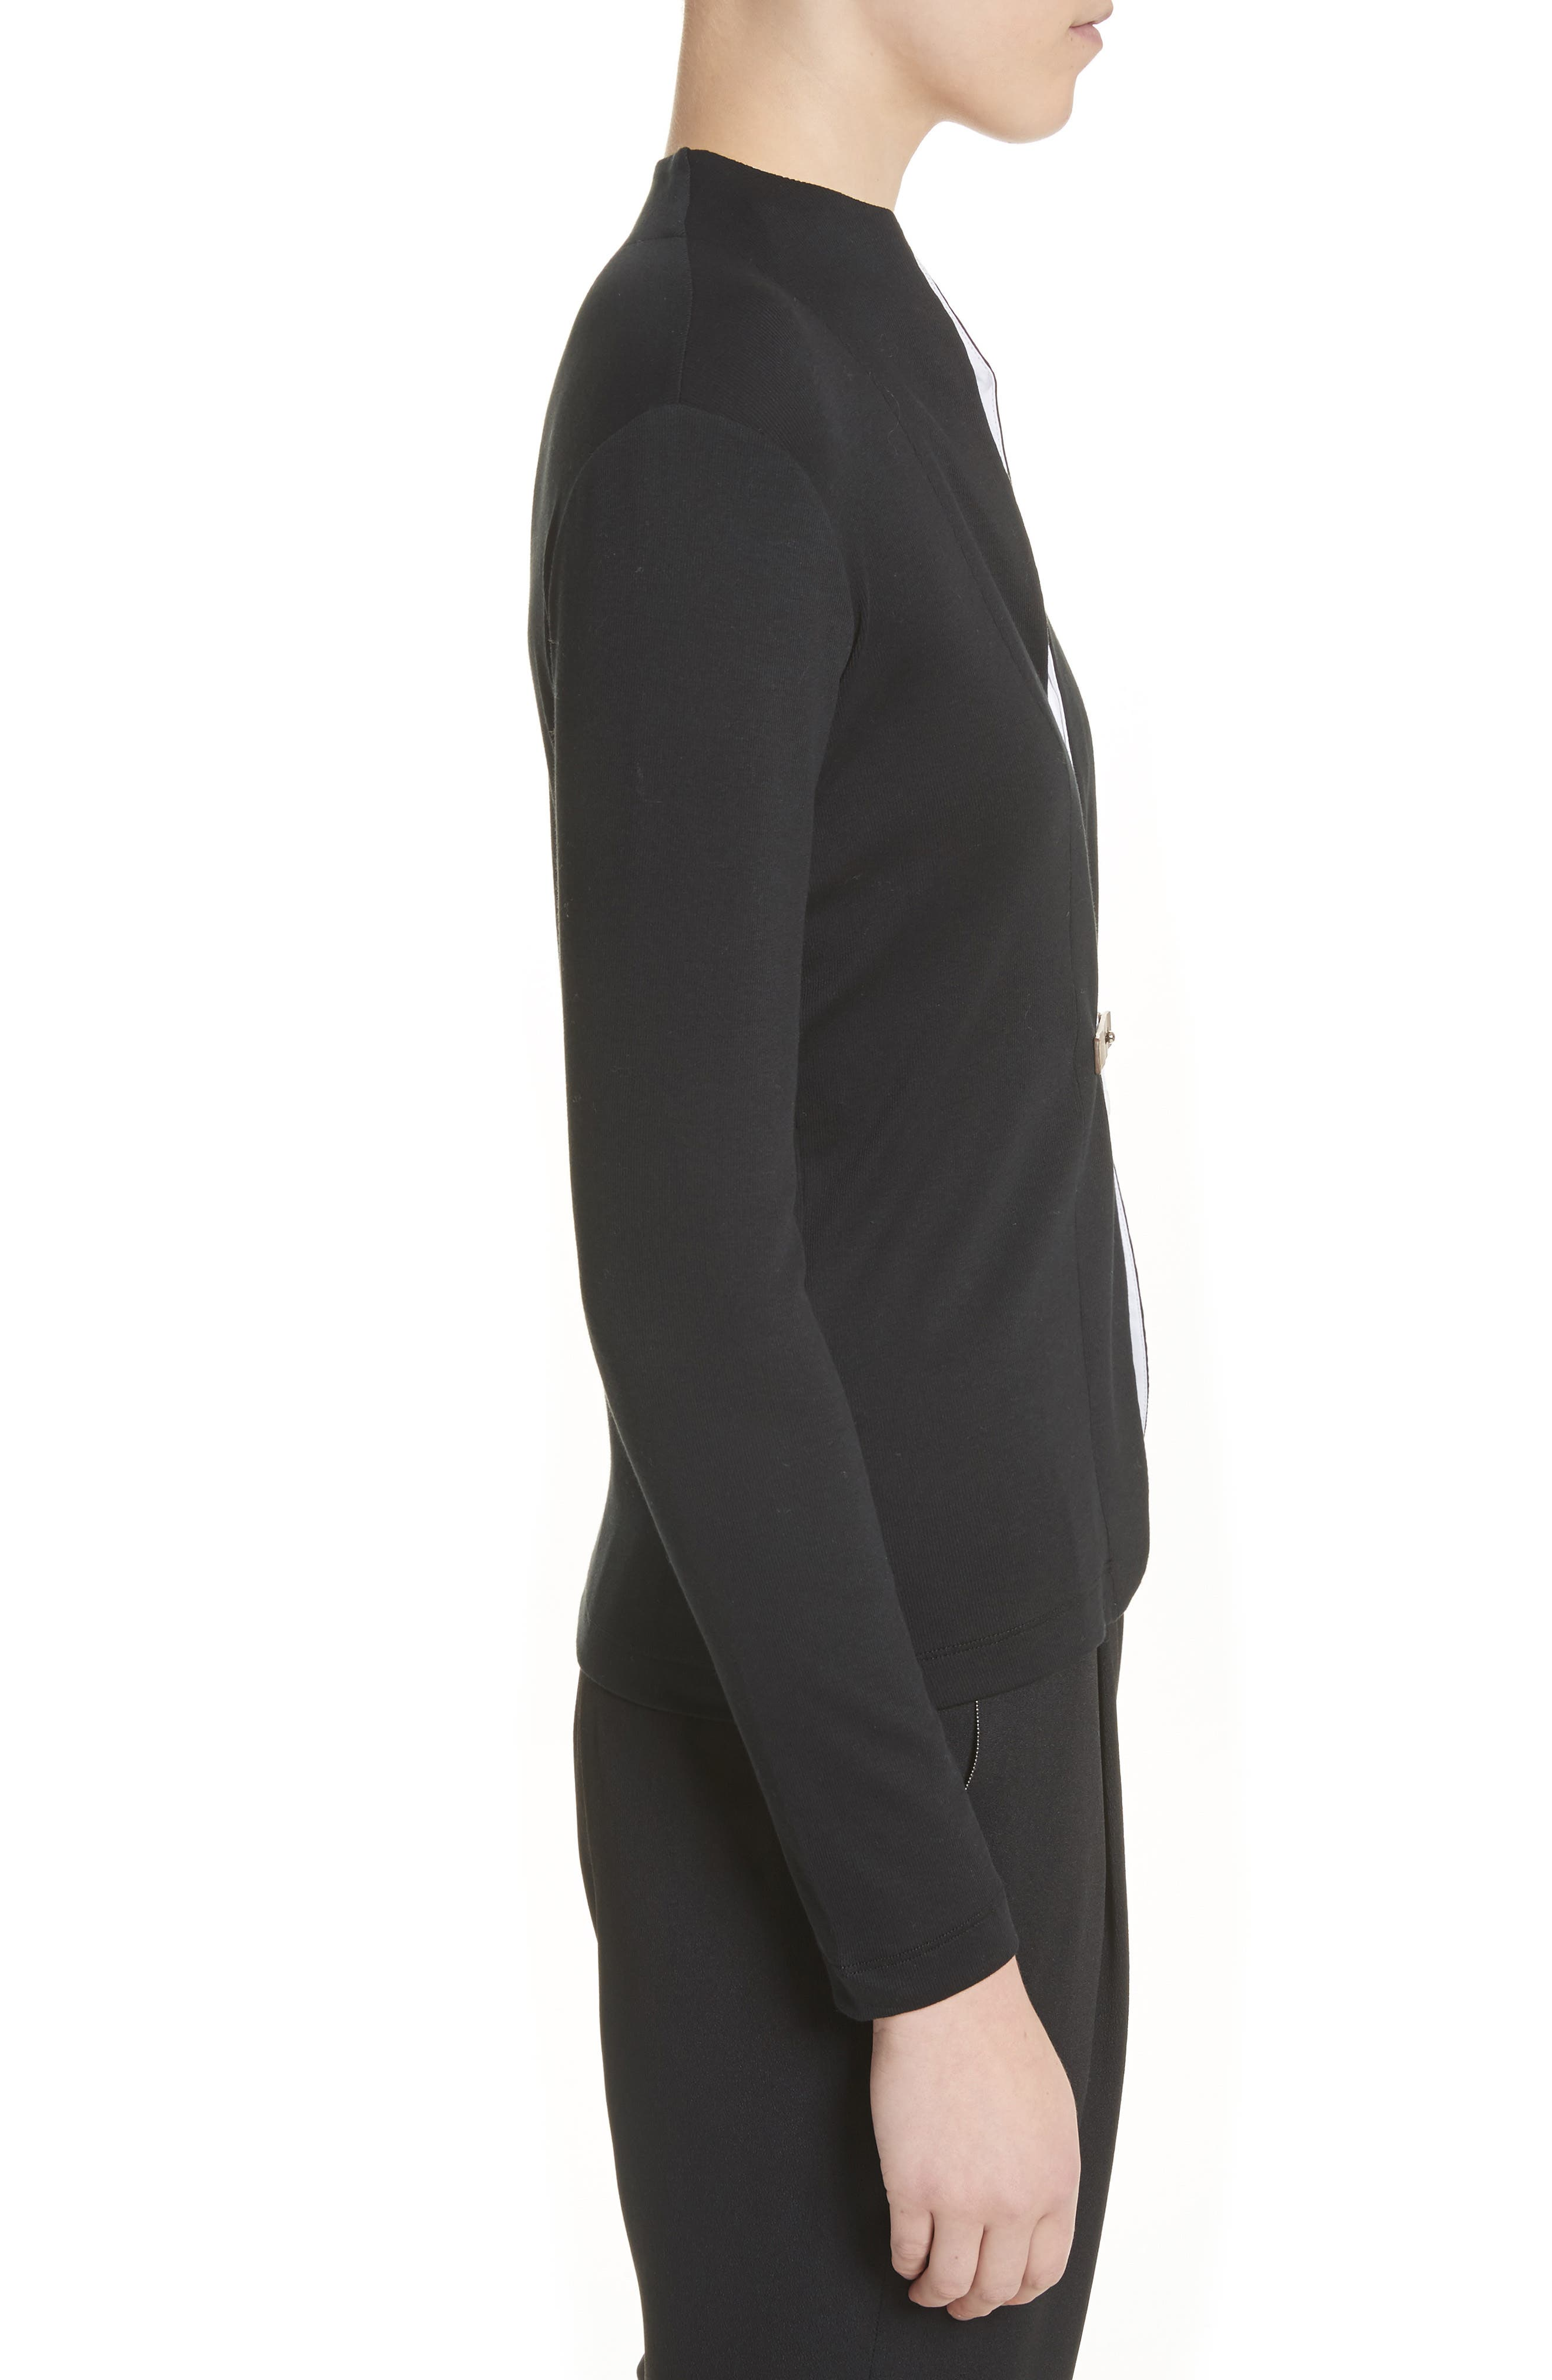 Cotton Blend Cardigan with Insert,                             Alternate thumbnail 4, color,                             Black White